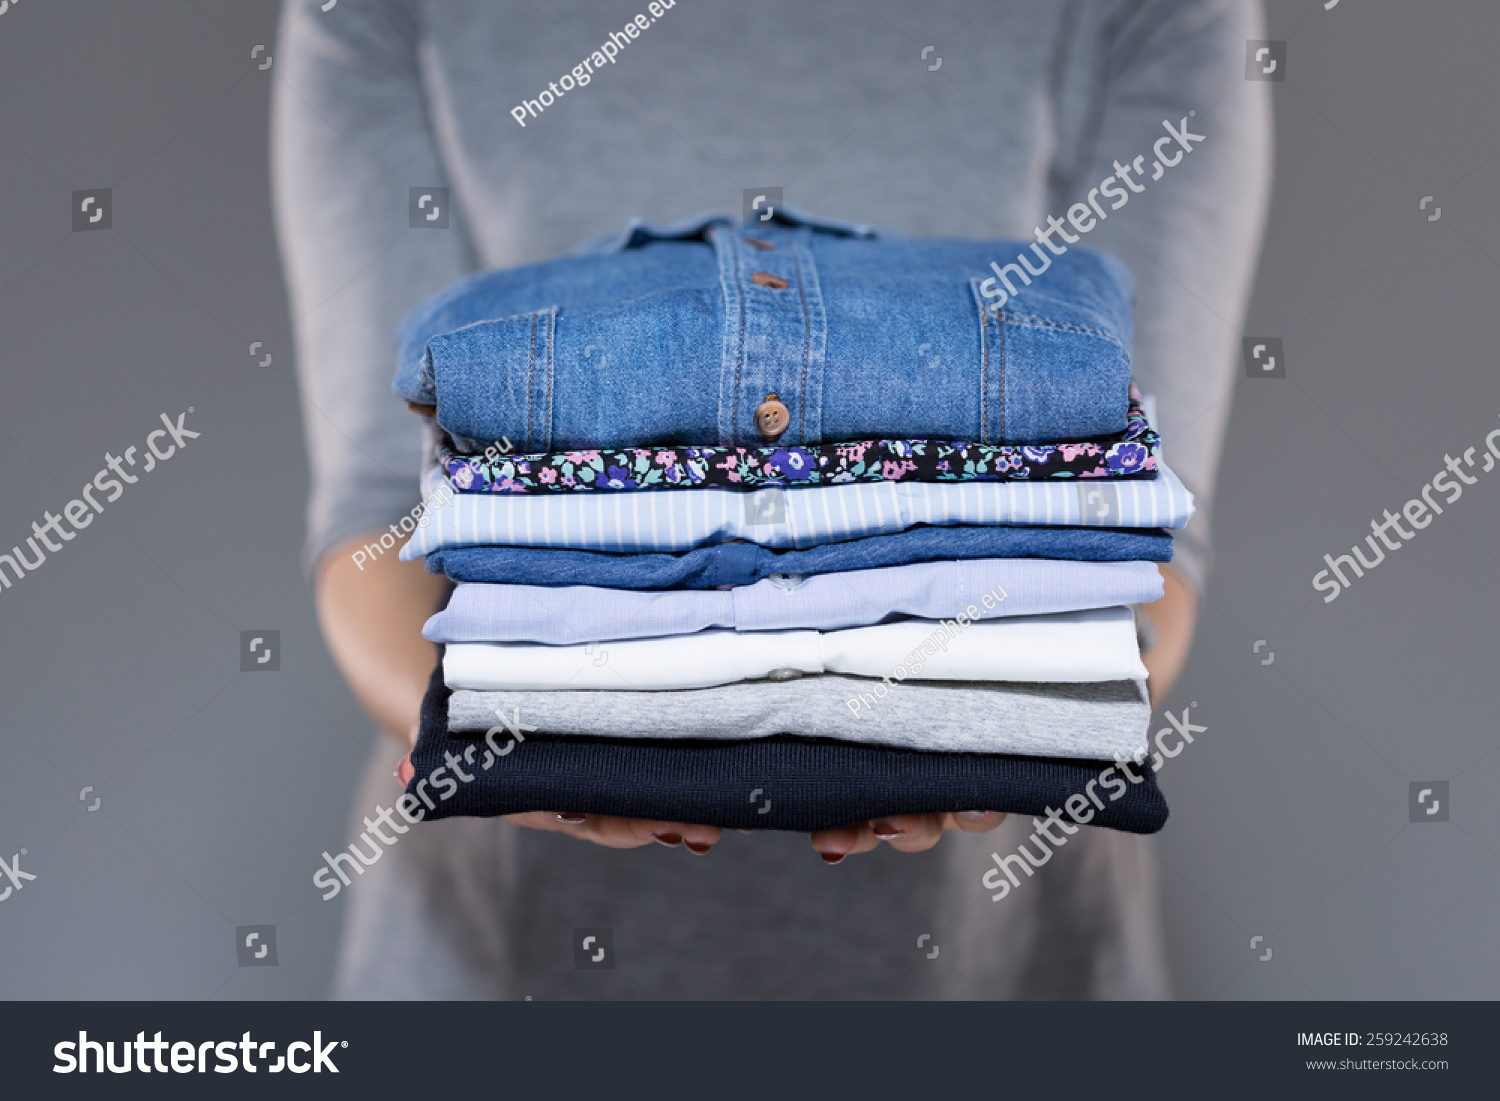 Woman holding folded clothes in hands #259242638